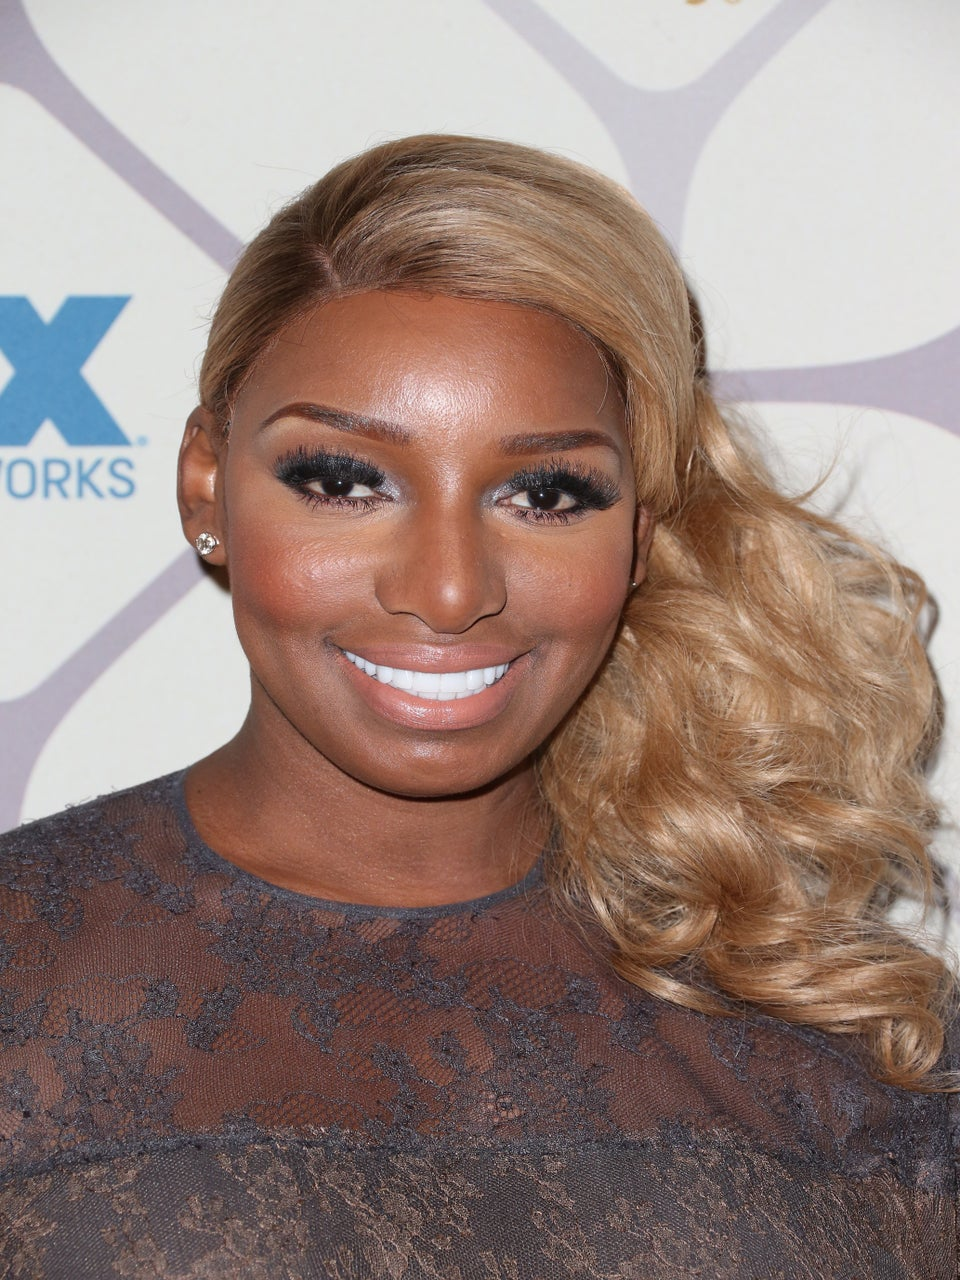 NeNe Leakes to Make Surprise Guest Appearance on 'RHOA'